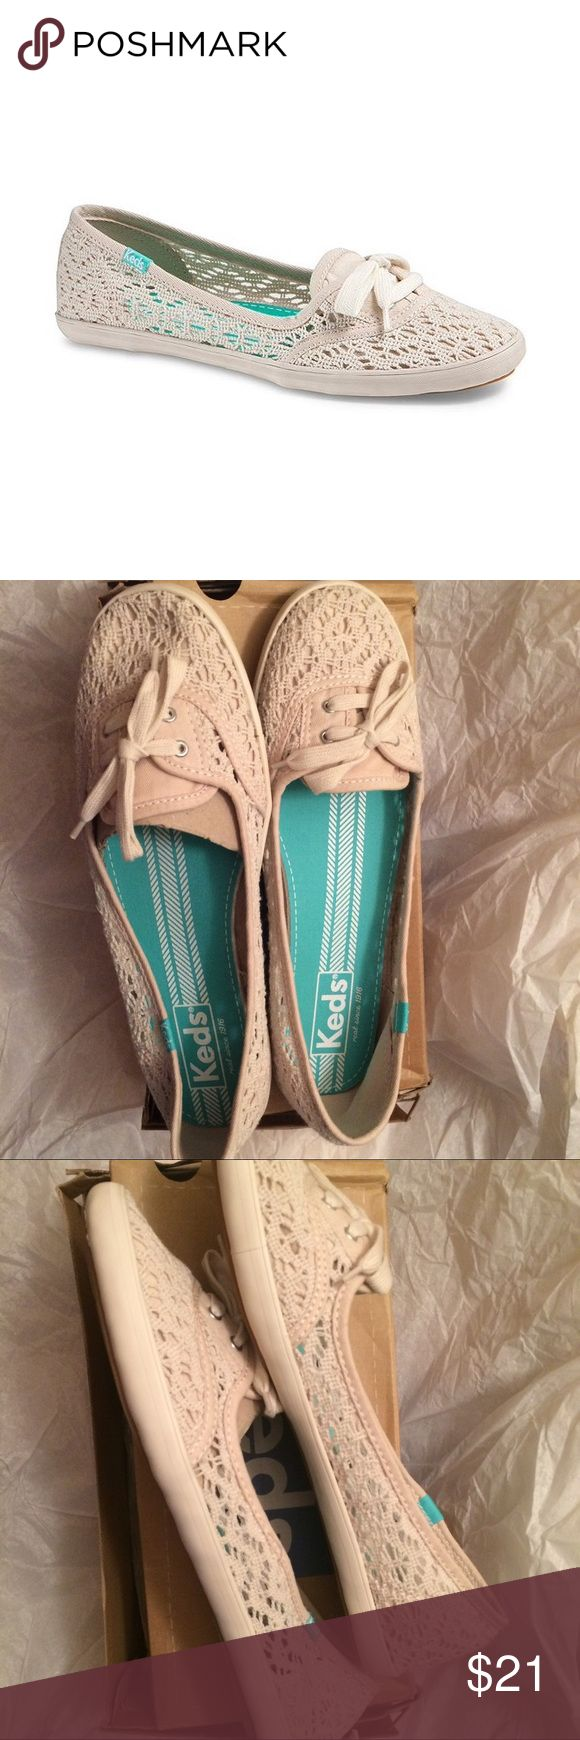 New Keds Teacup Croche Flat Shoes 11M Brand new authentic  Box will NOT be shipped to save the shipping cost. Women size 11M Fast shipping ‼️‼️price is absolutely firm Keds Shoes Flats & Loafers